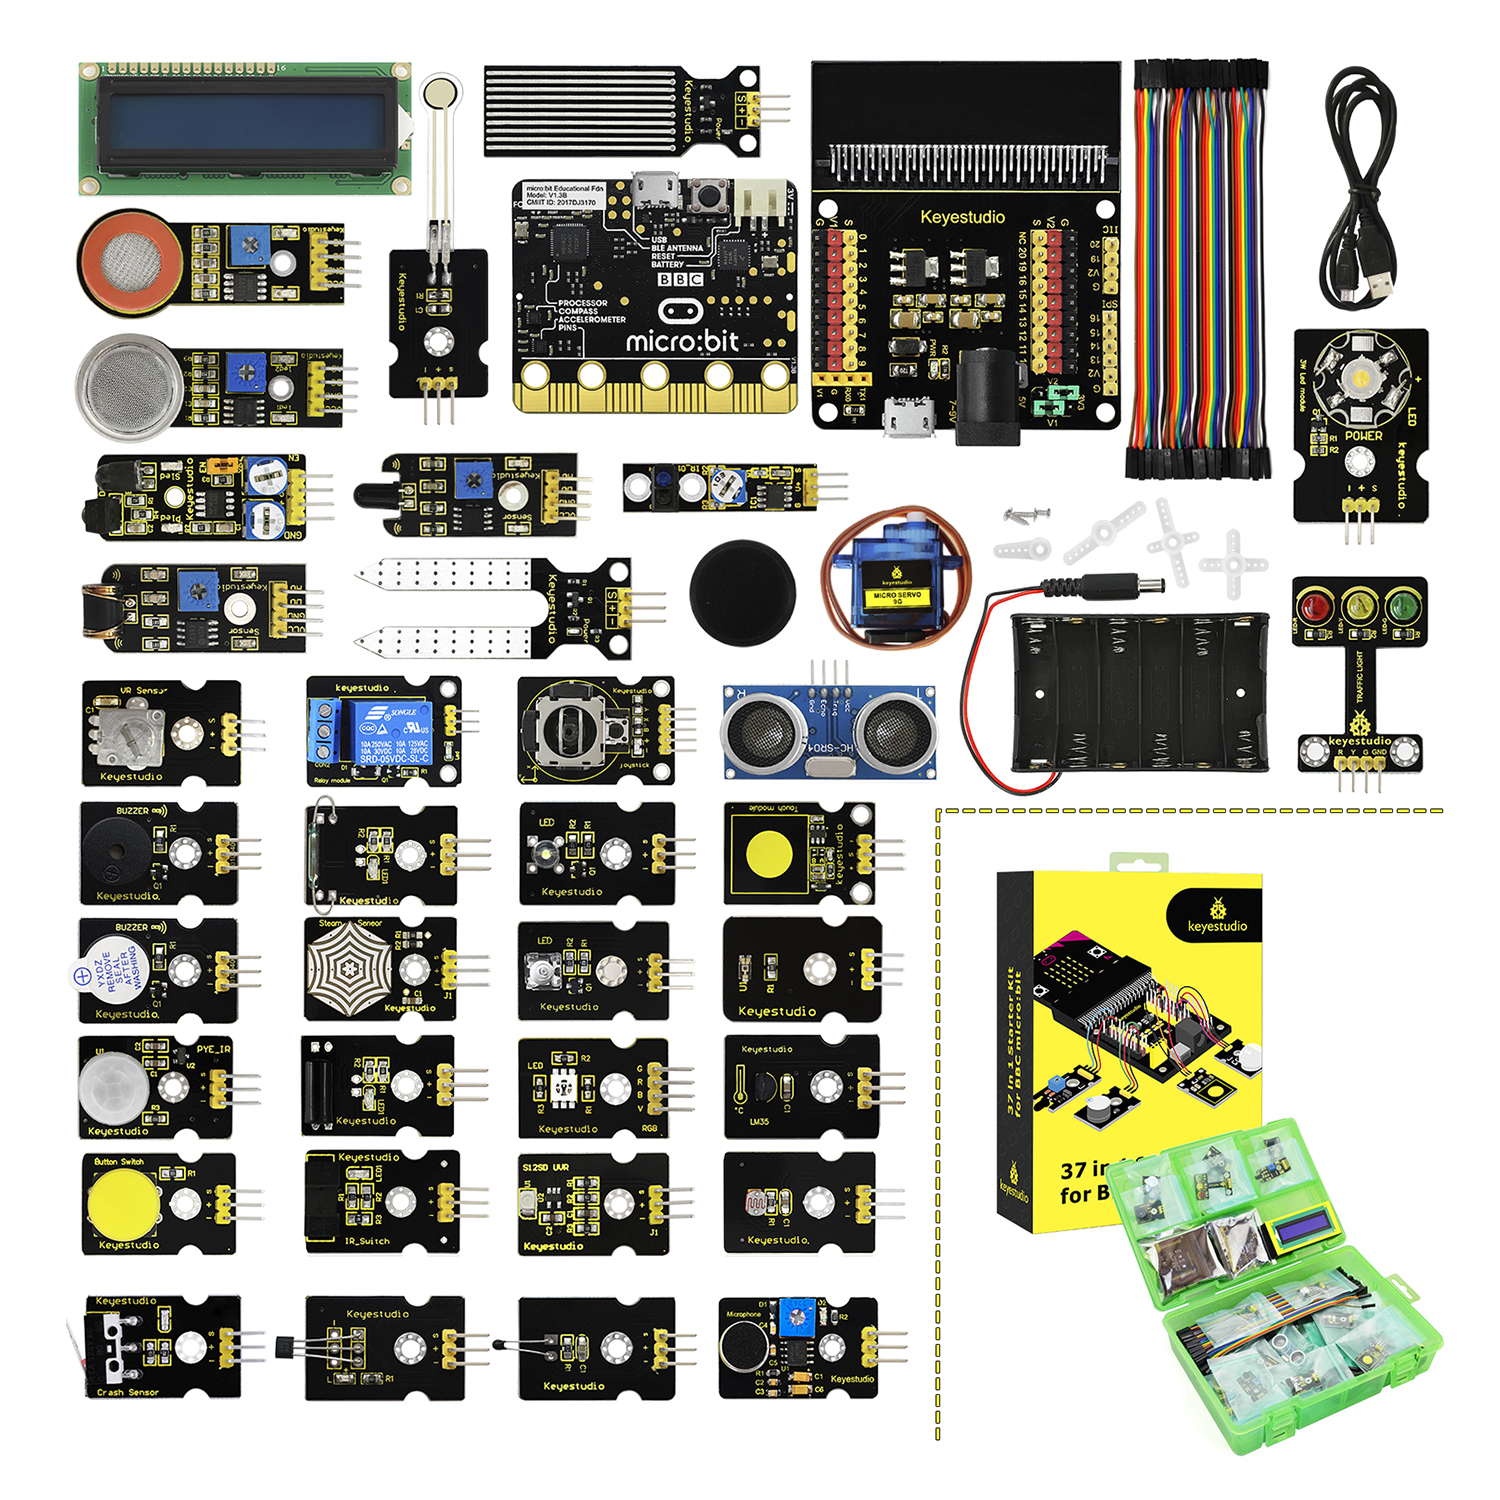 Keyestudio 37 in 1 Sensor  Starter Kit With Micro:Bit Board for BBC Micro:Bit DIY ProjectsKeyestudio 37 in 1 Sensor  Starter Kit With Micro:Bit Board for BBC Micro:Bit DIY Projects